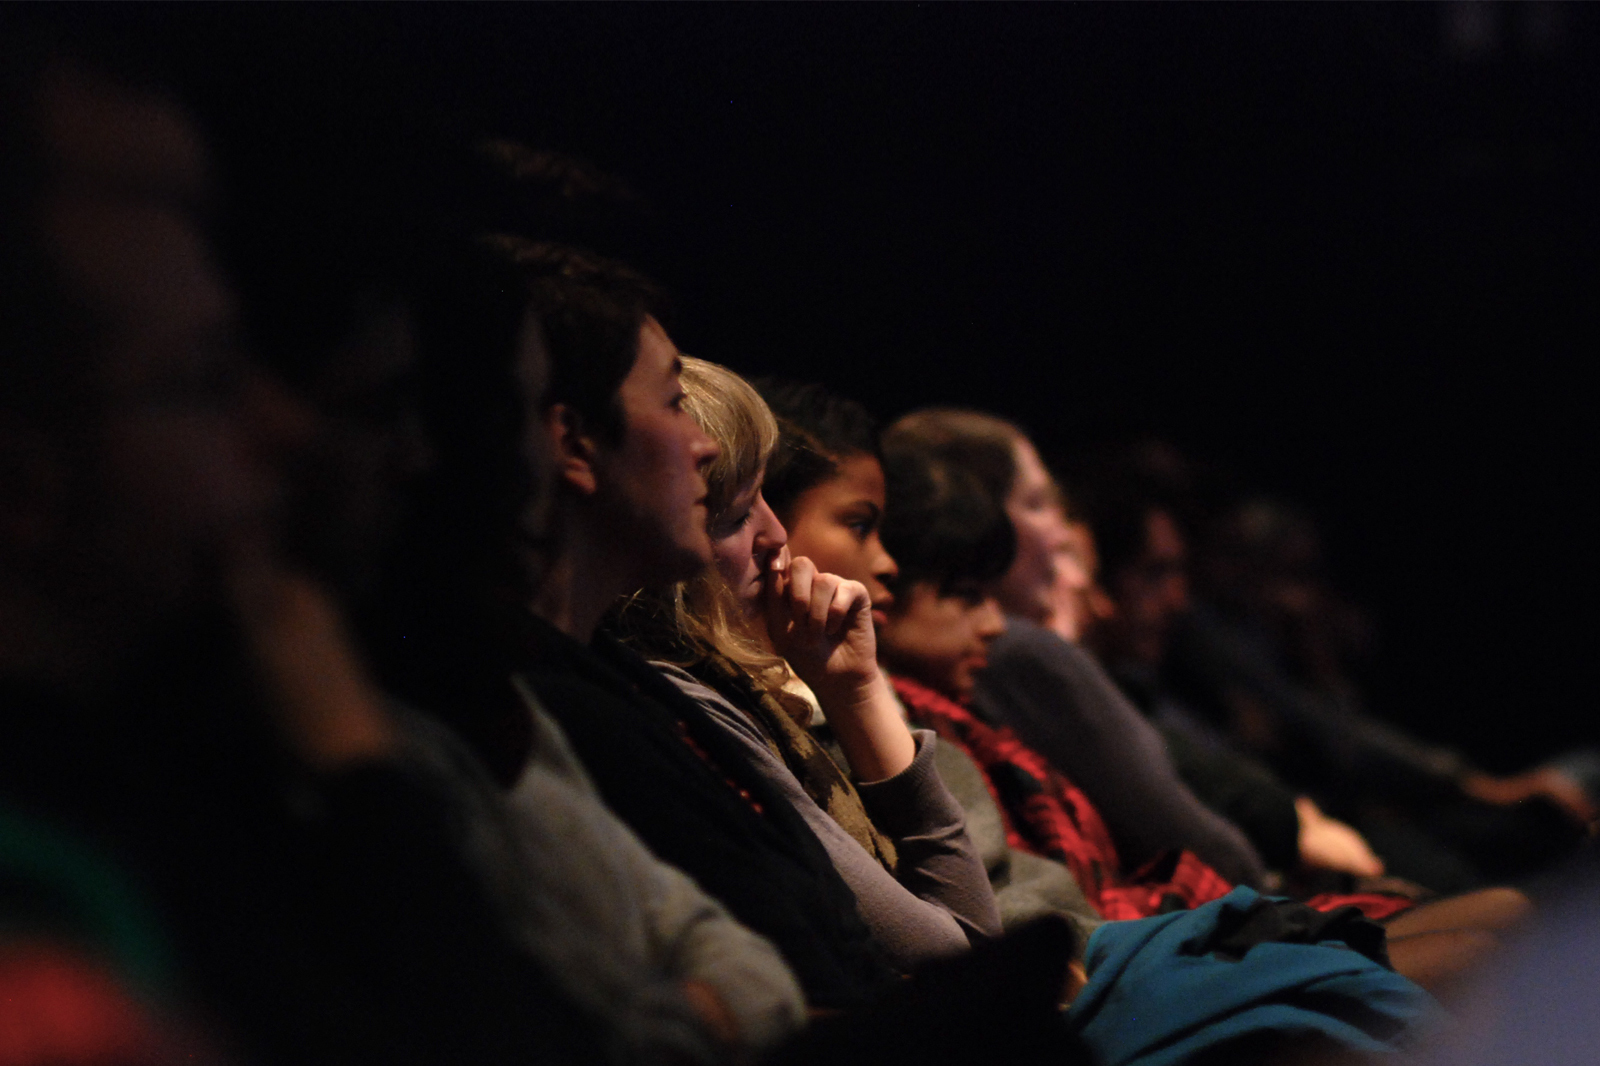 Film Distribution – Connecting Films with Audiences